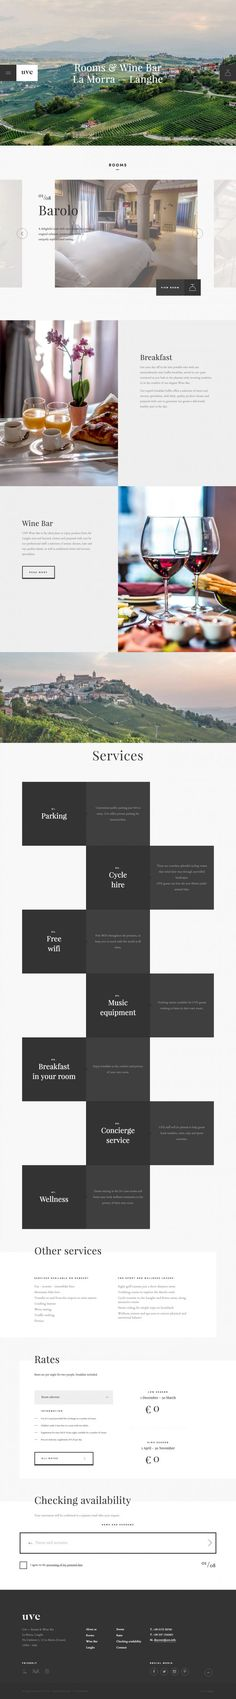 Design Brochure Hotel Galleries 69 Ideas For 2019 Website Design Layout, Layout Design, Website Designs, Website Ideas, Flat Website, Flat Design Inspiration, Design Ideas, Web Hotel, Hotel Website Templates